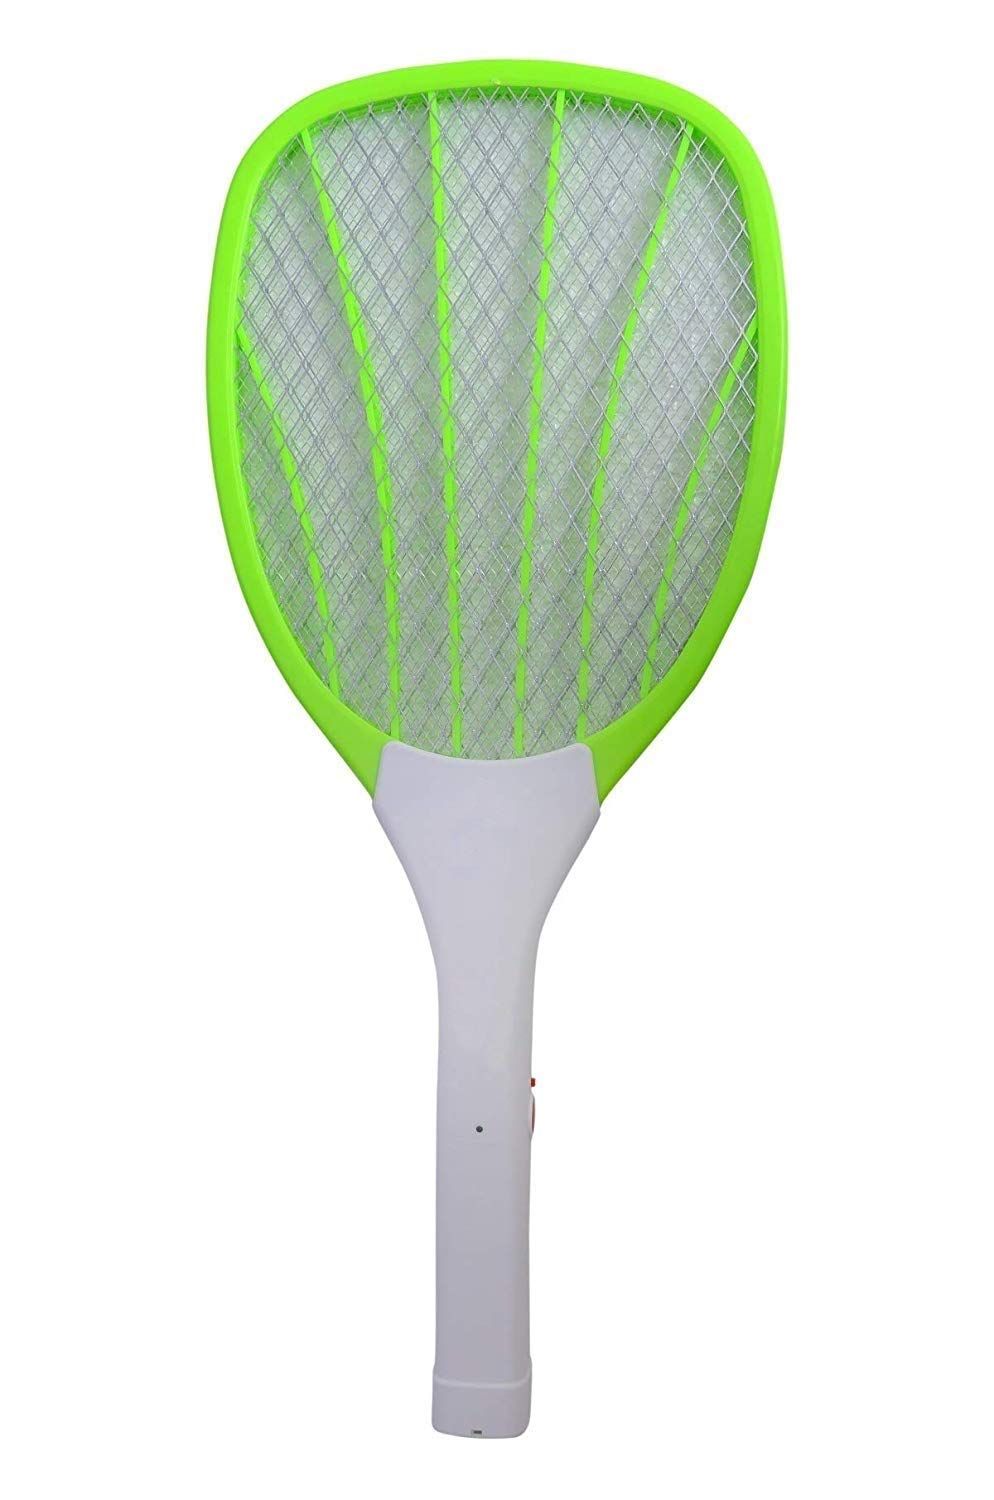 SUPER TOY Rechargeable Mosquito Racket/Insect Killer Bat (Multicolour)